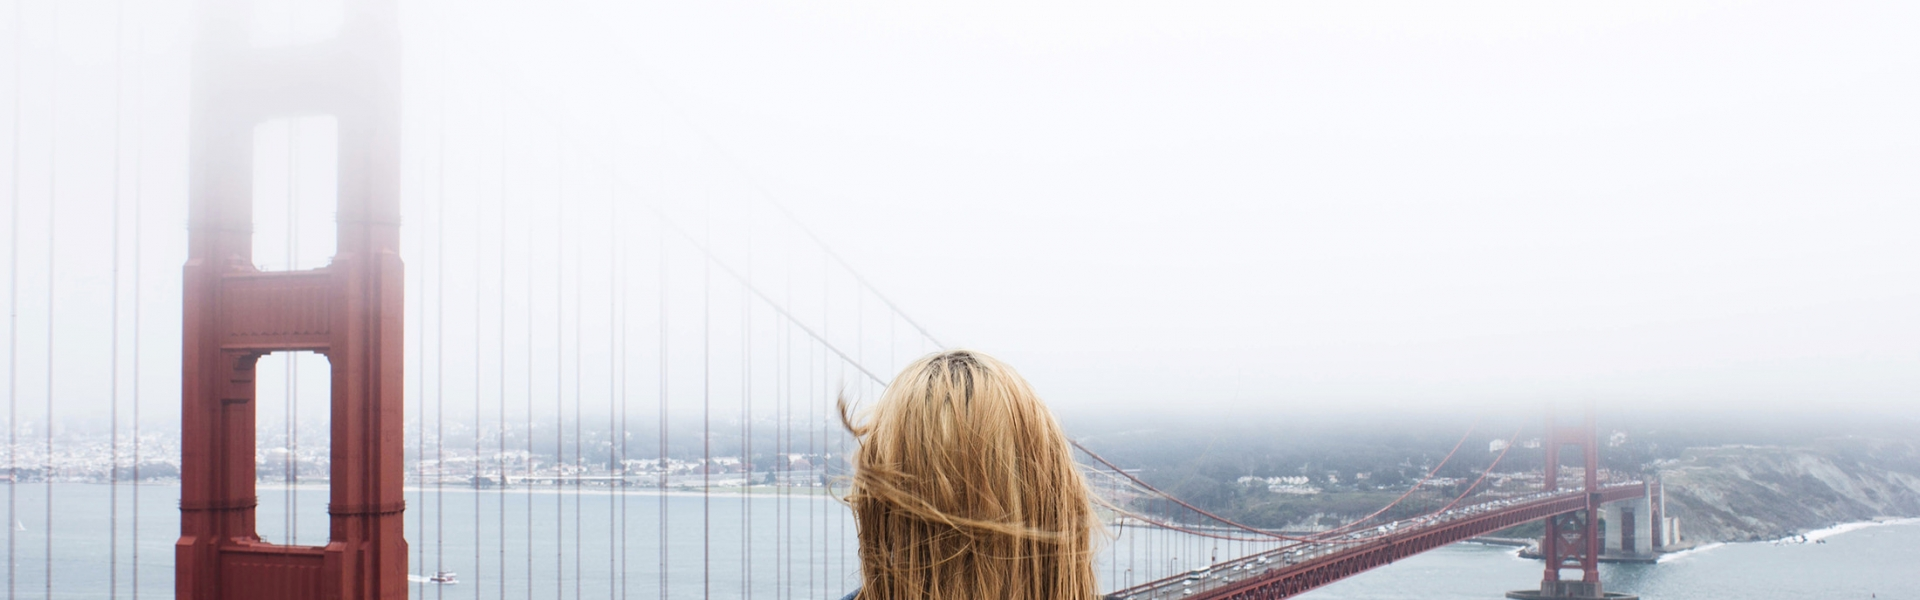 woman stand and looks at golden gate bridge in the fog